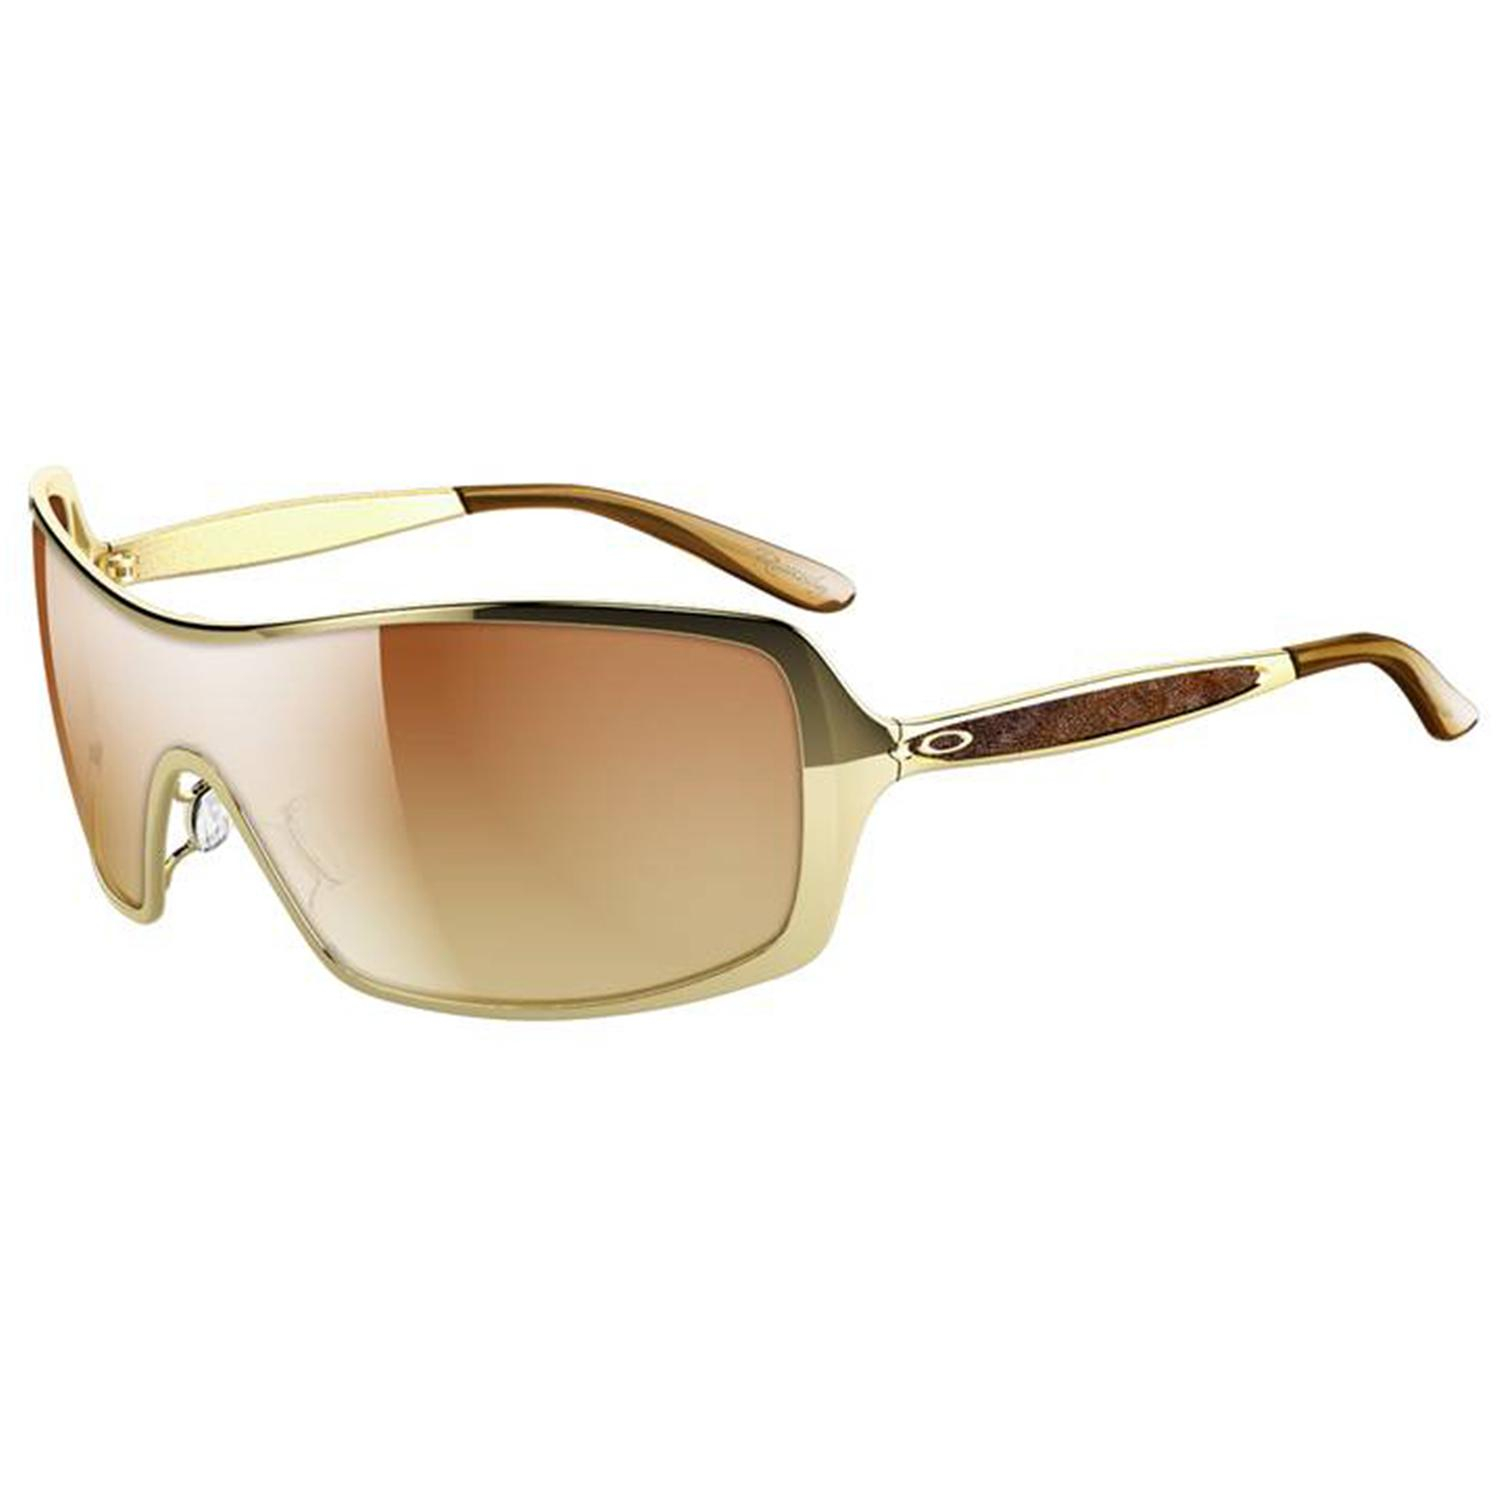 4kfmqtlcjehwcbn Oakley Women Sunglasses